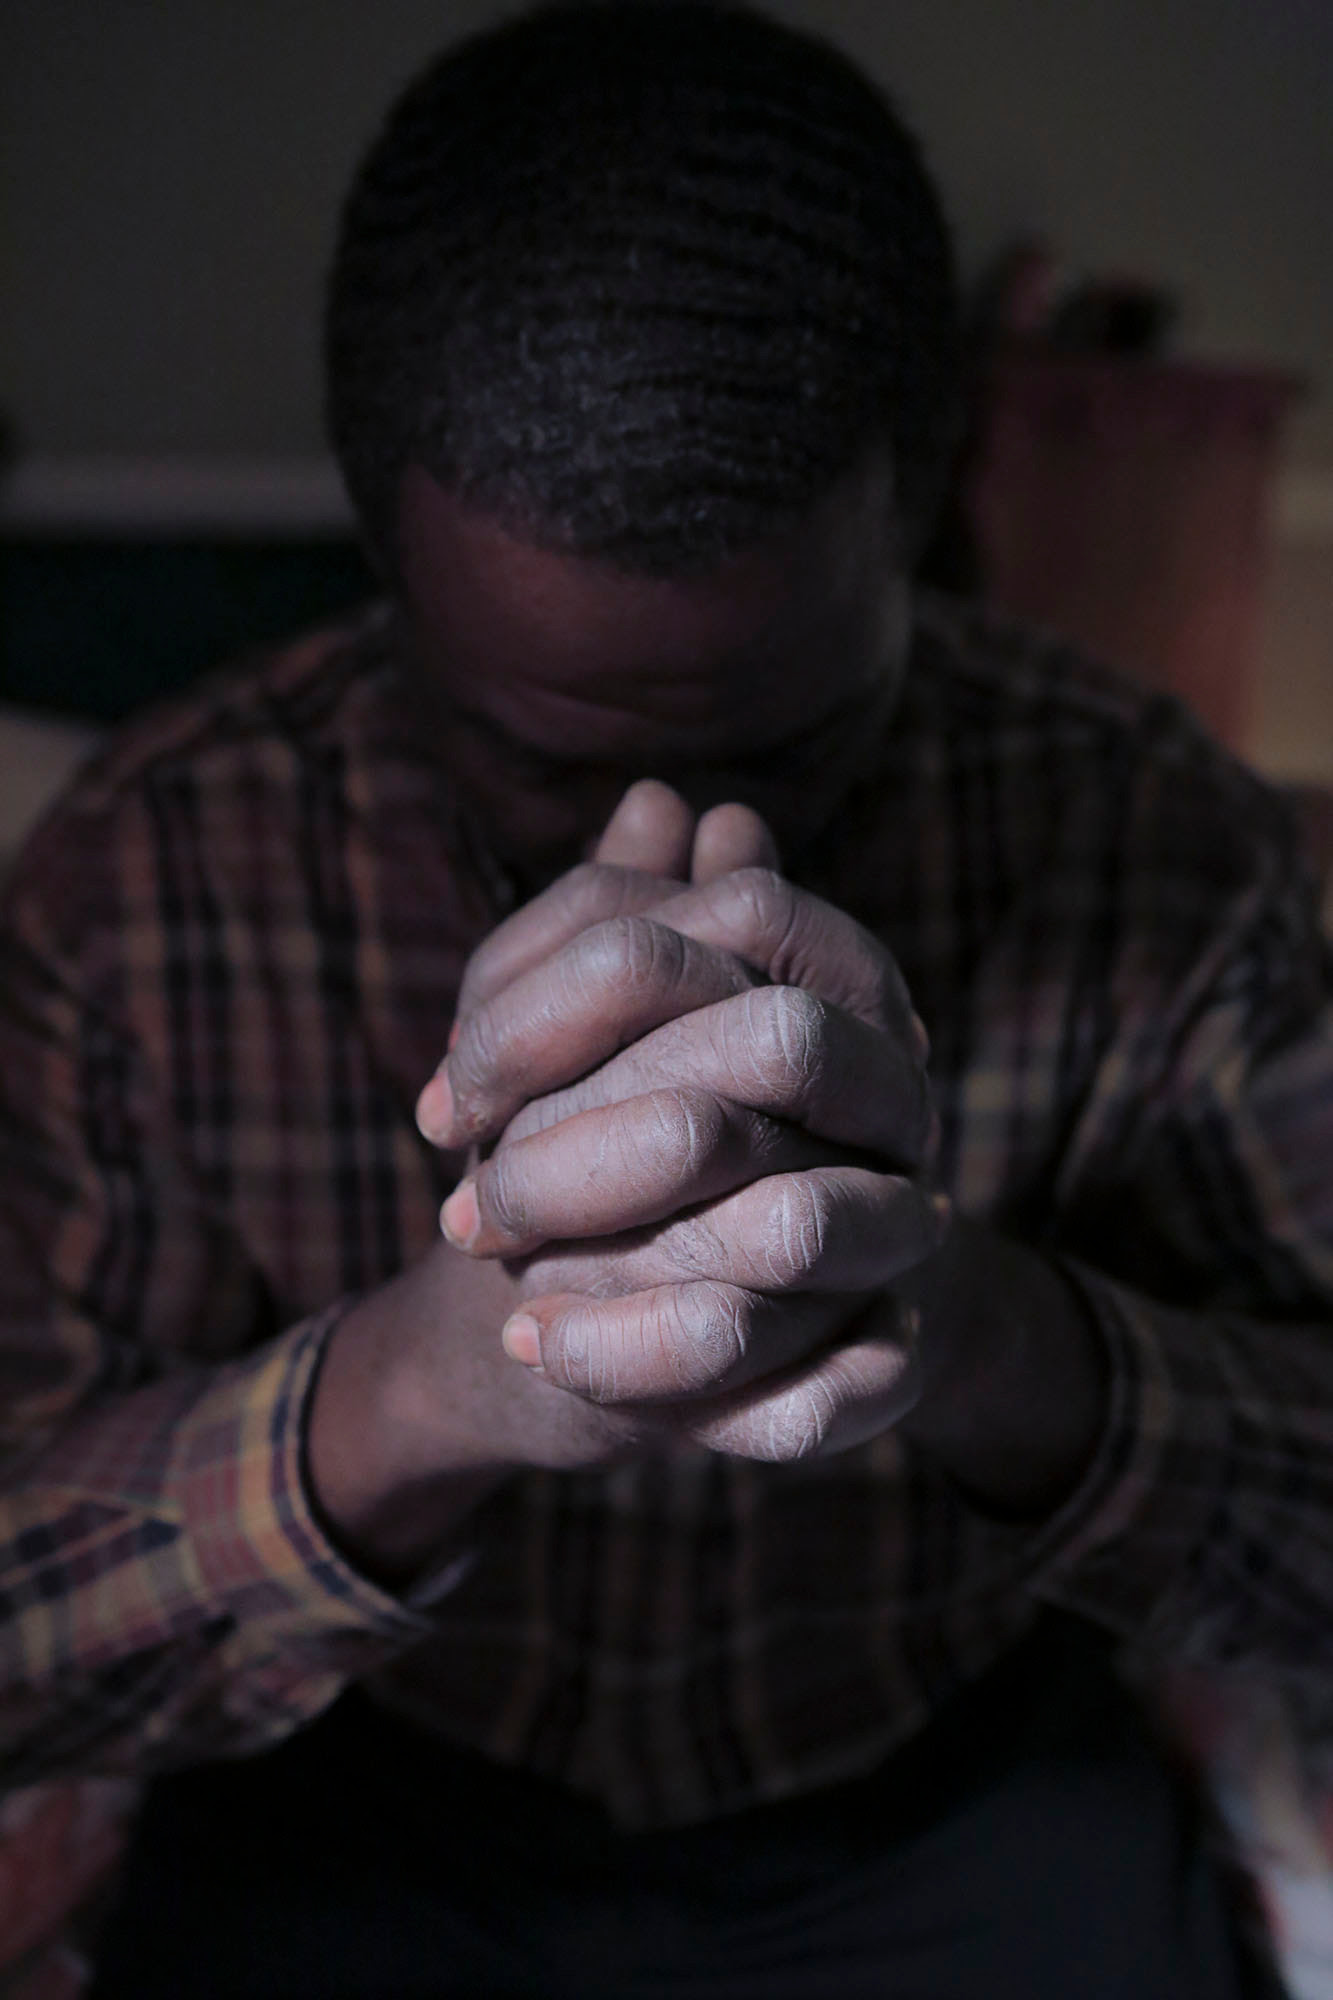 Anthony Gordon used his hands to beat people to get what he wanted when he was young. Now he uses them to pray and work his way out of homelessness.